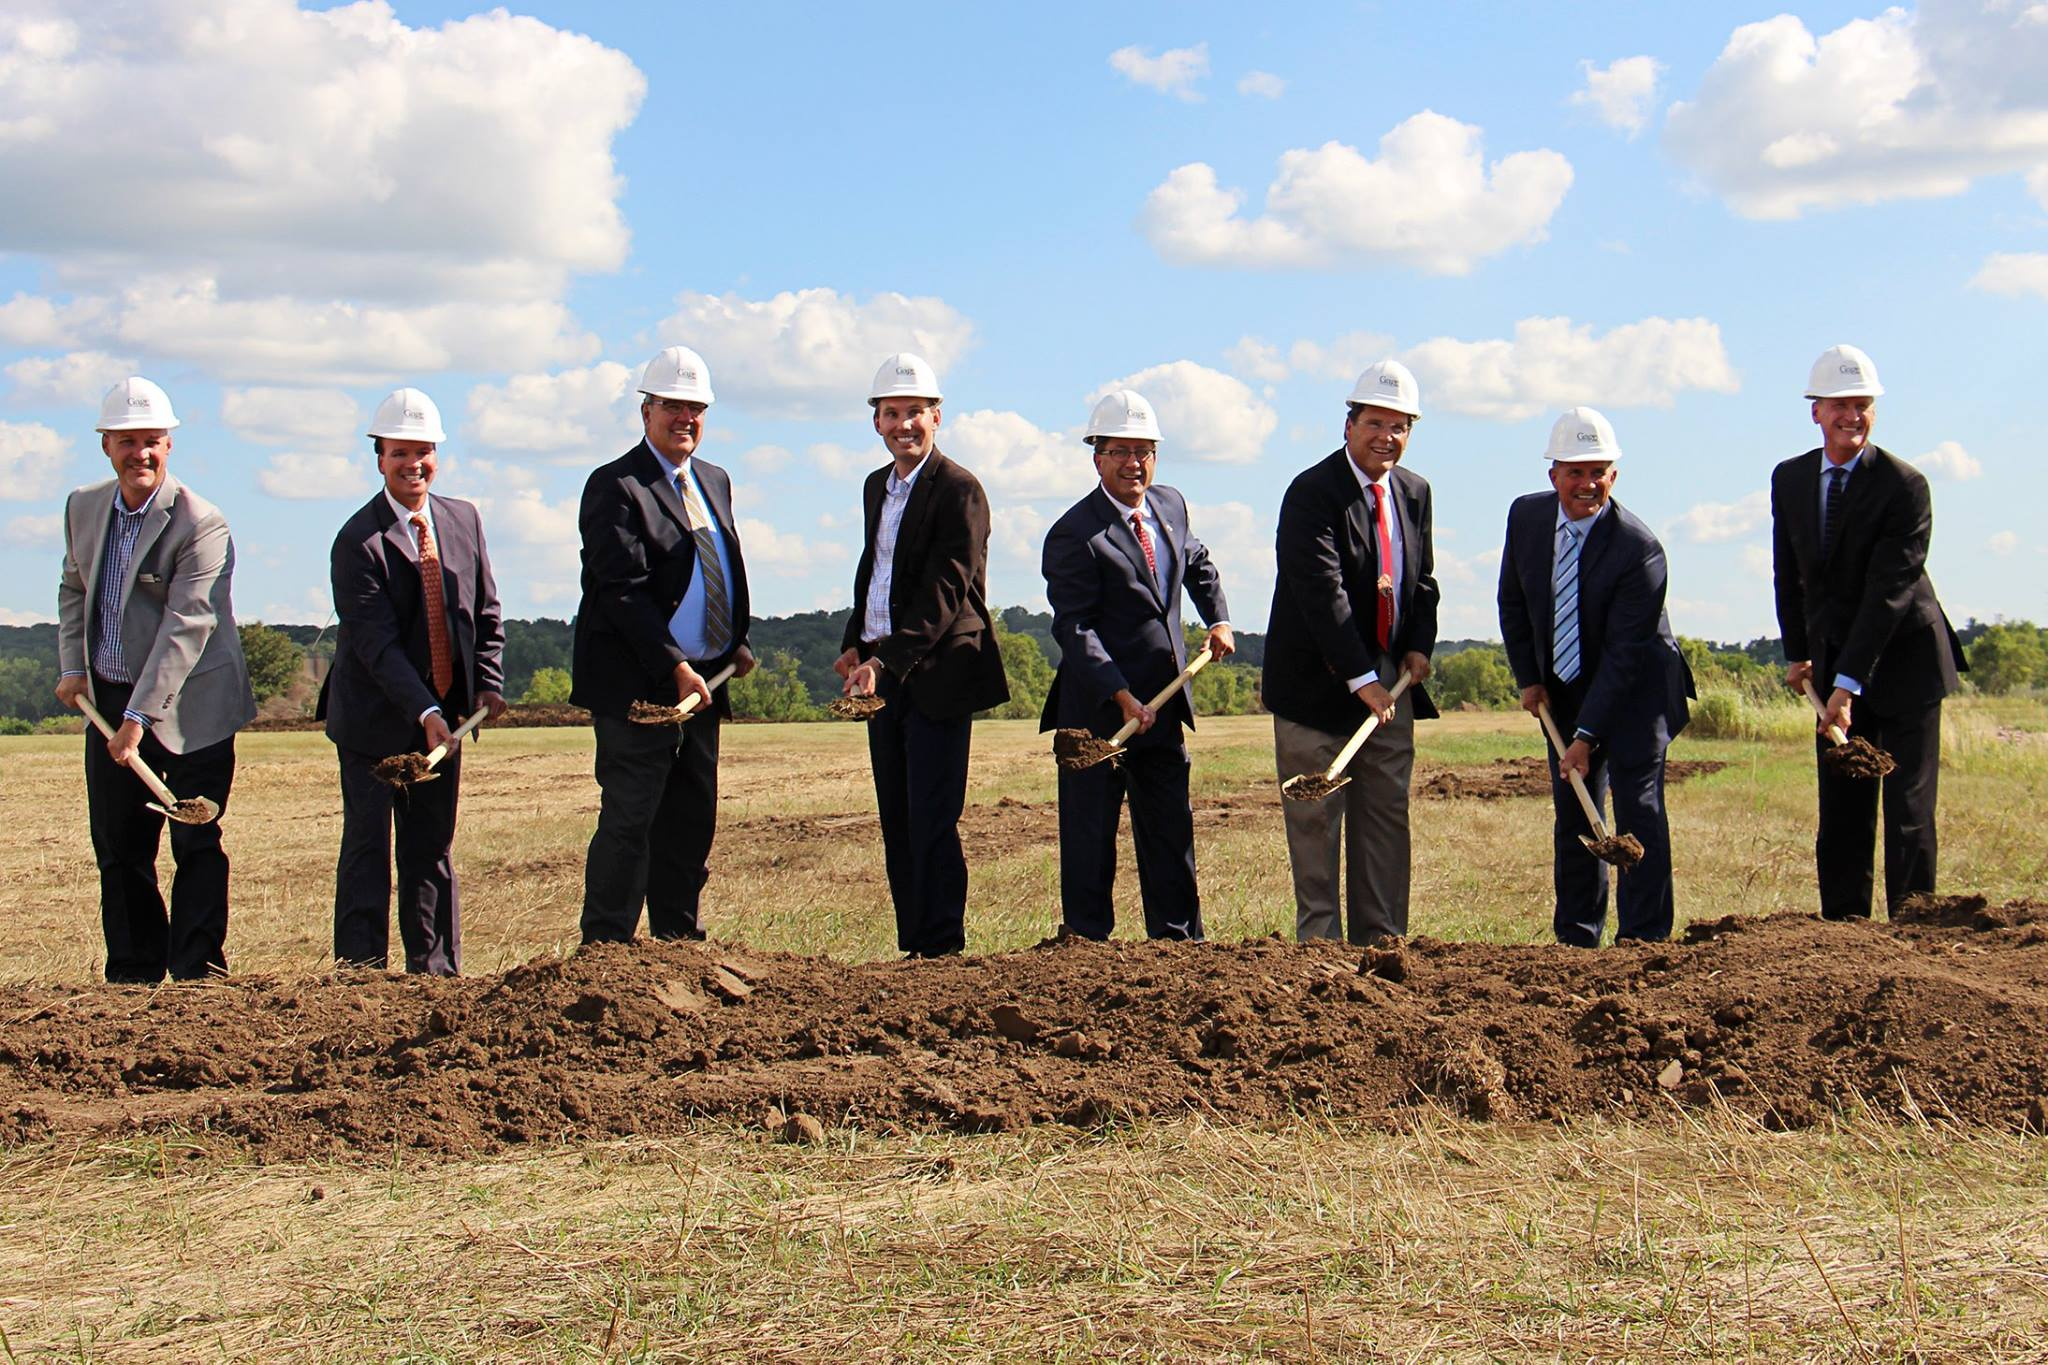 Groundbreaking for the new Gage Brothers headquarters in Sioux Falls SD